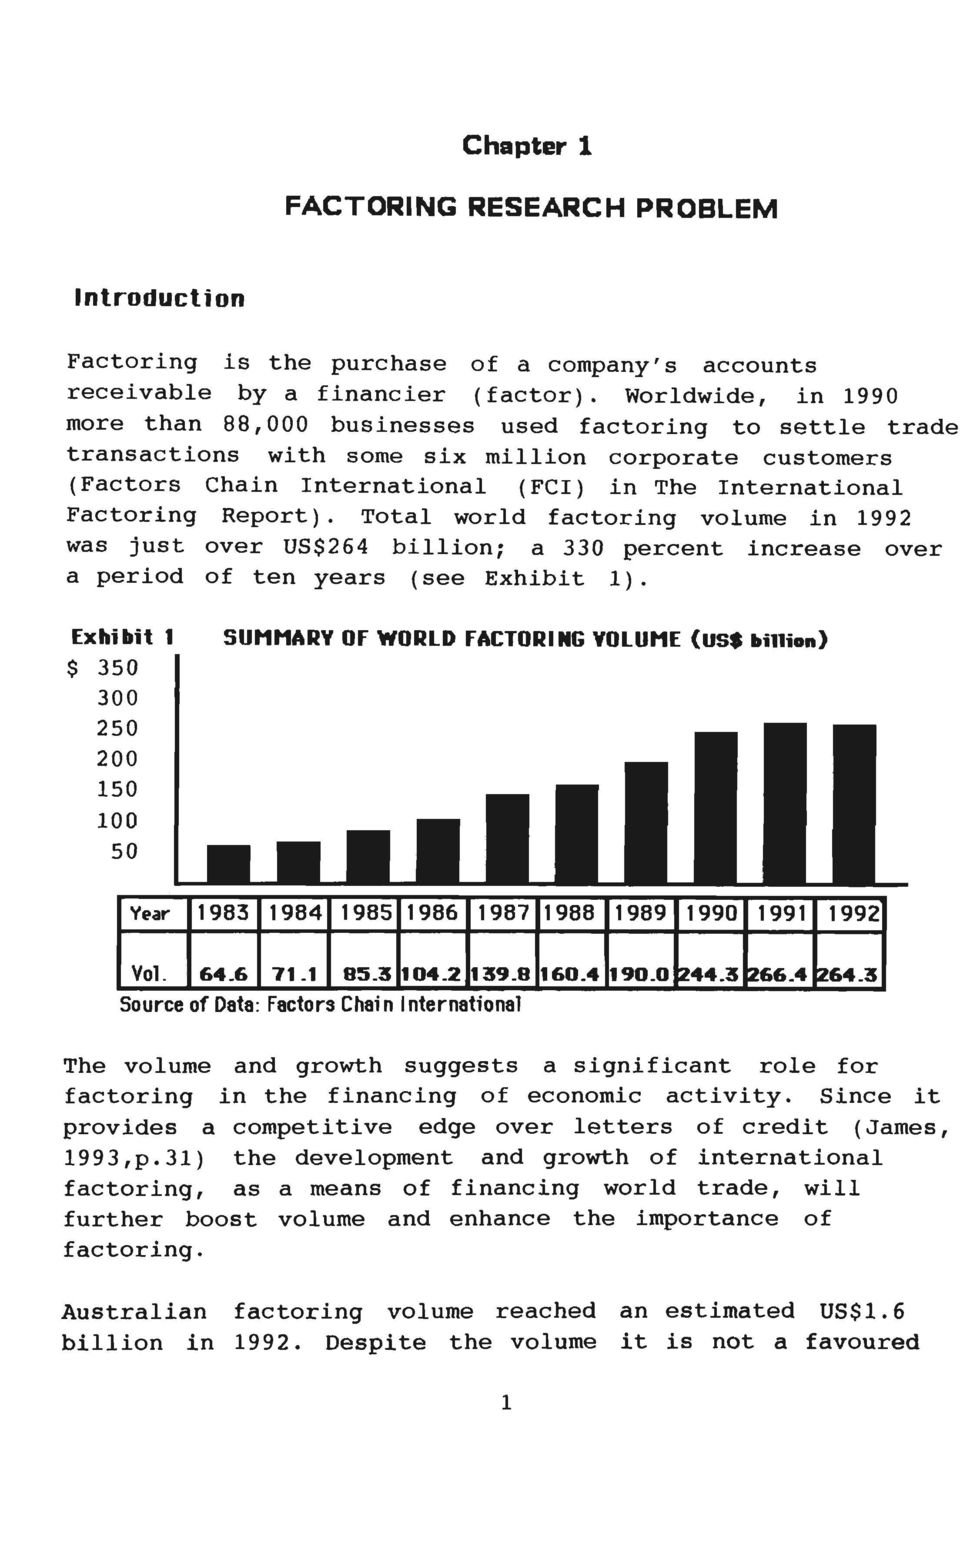 Report). Total world factoring volume in 1992 was just over US$264 billion; a 330 percent increase over a period of ten years (see Exhibit 1).